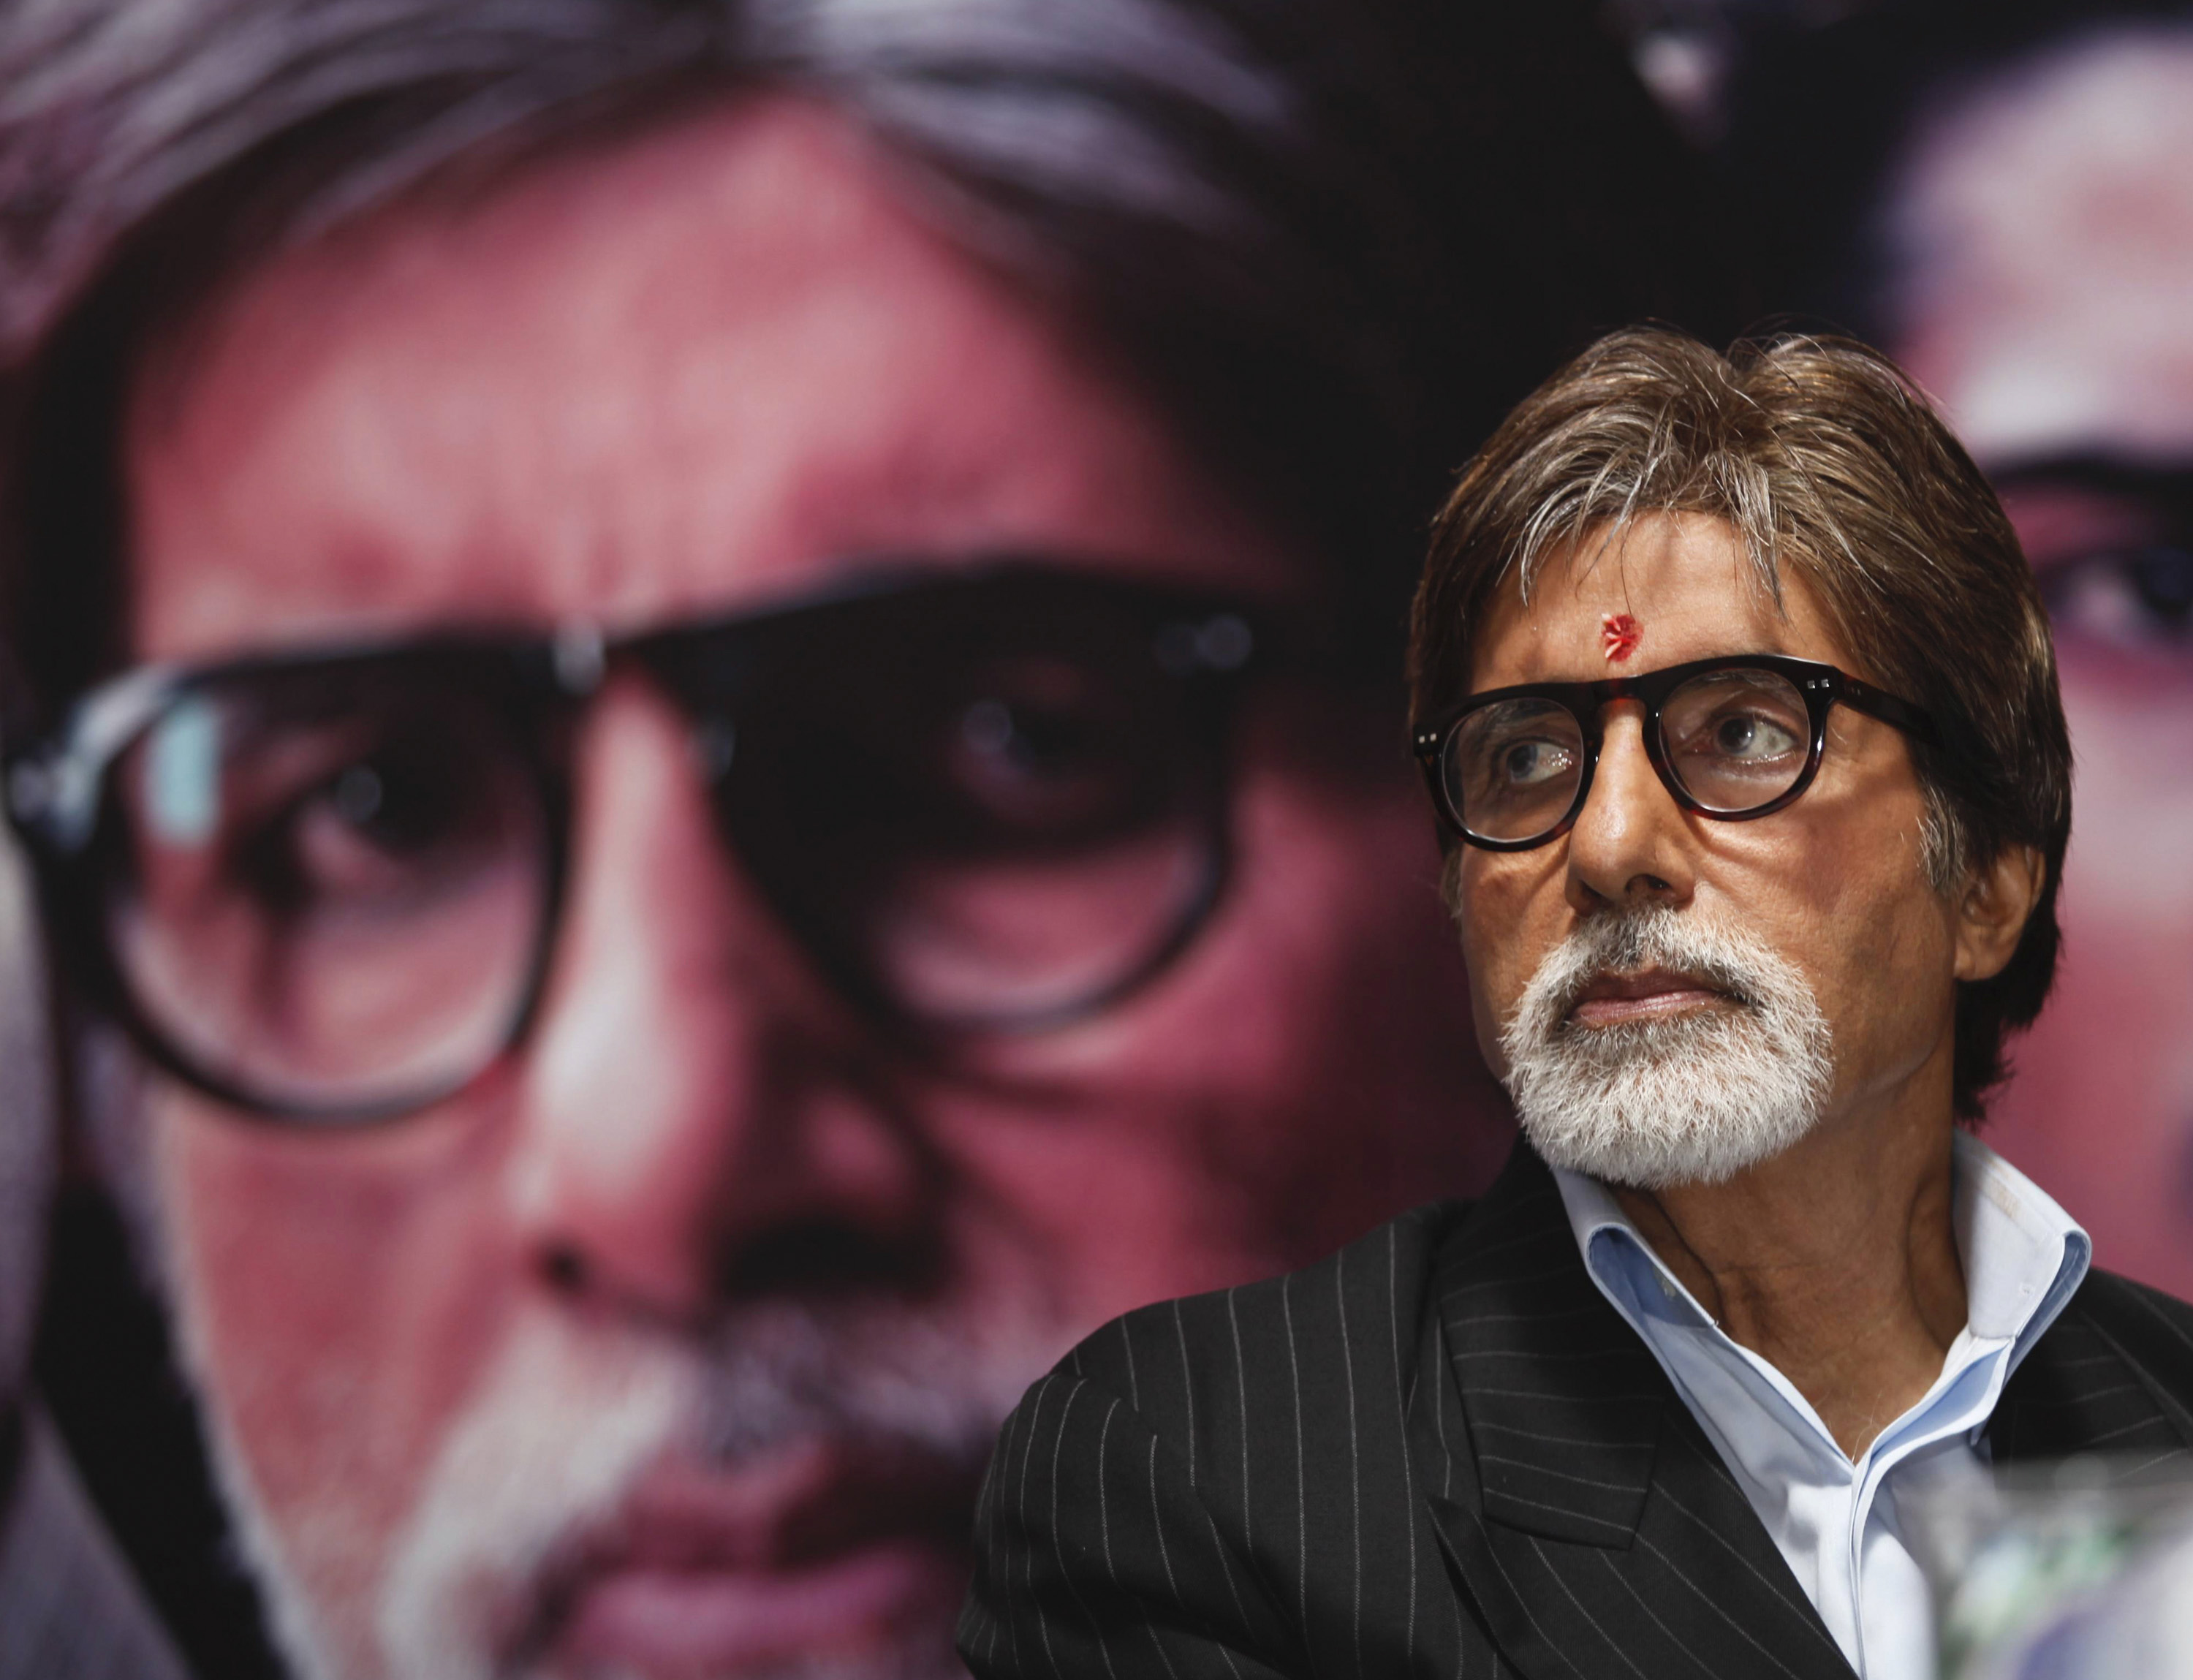 Bollywood actor Amitabh Bachchan. @REUTERS/Rupak De Chowdhuri